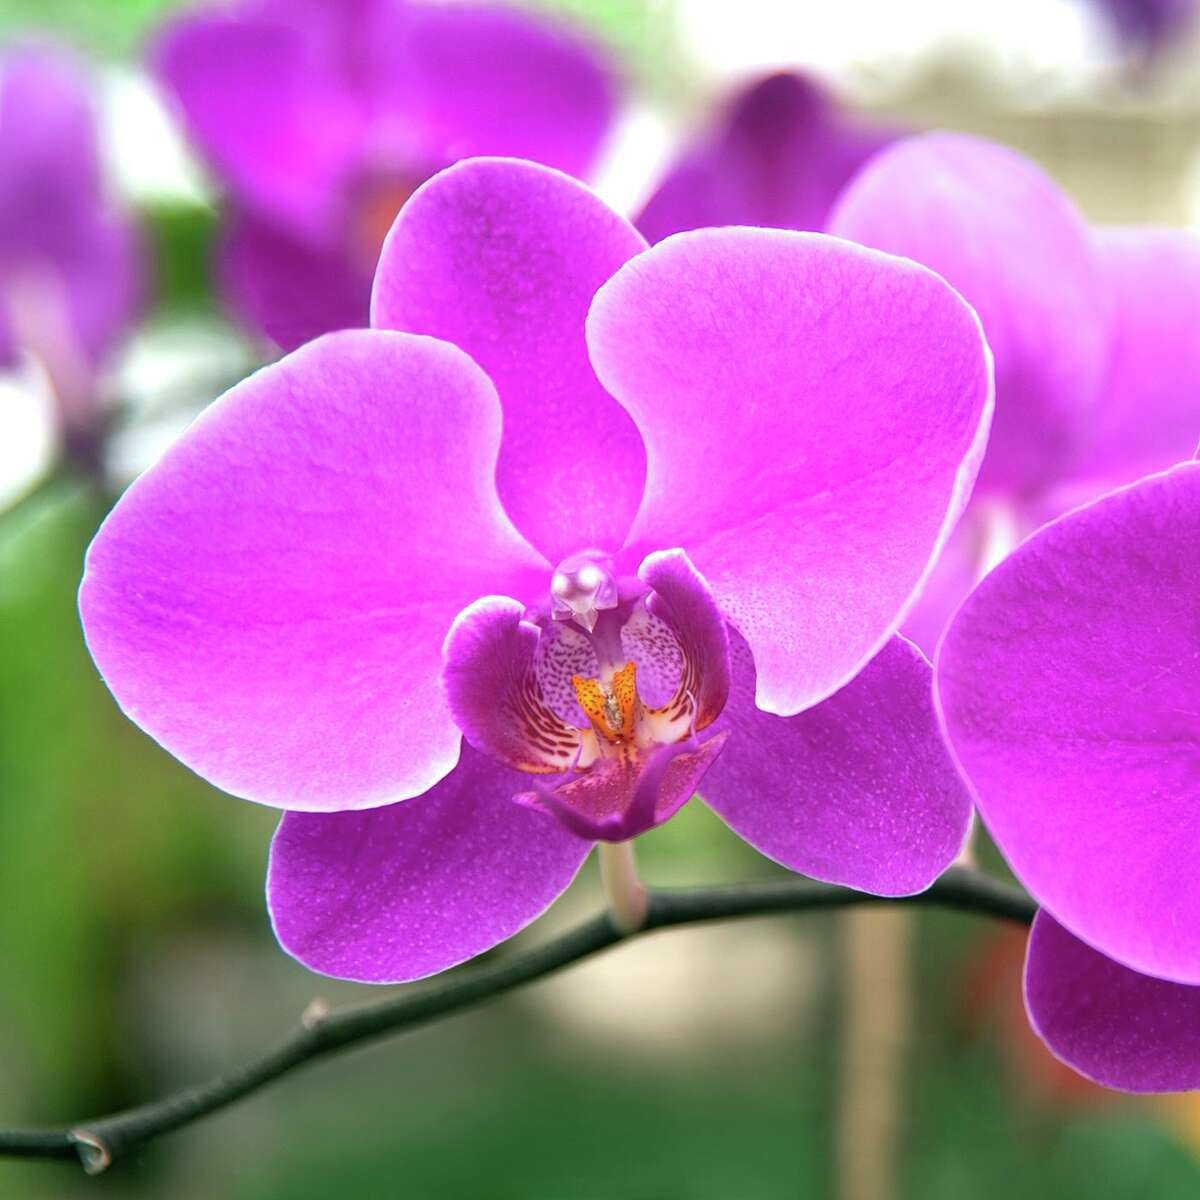 Phalaenopsis orchid or moth orchid is a very easy and rewarding orchid to grow.